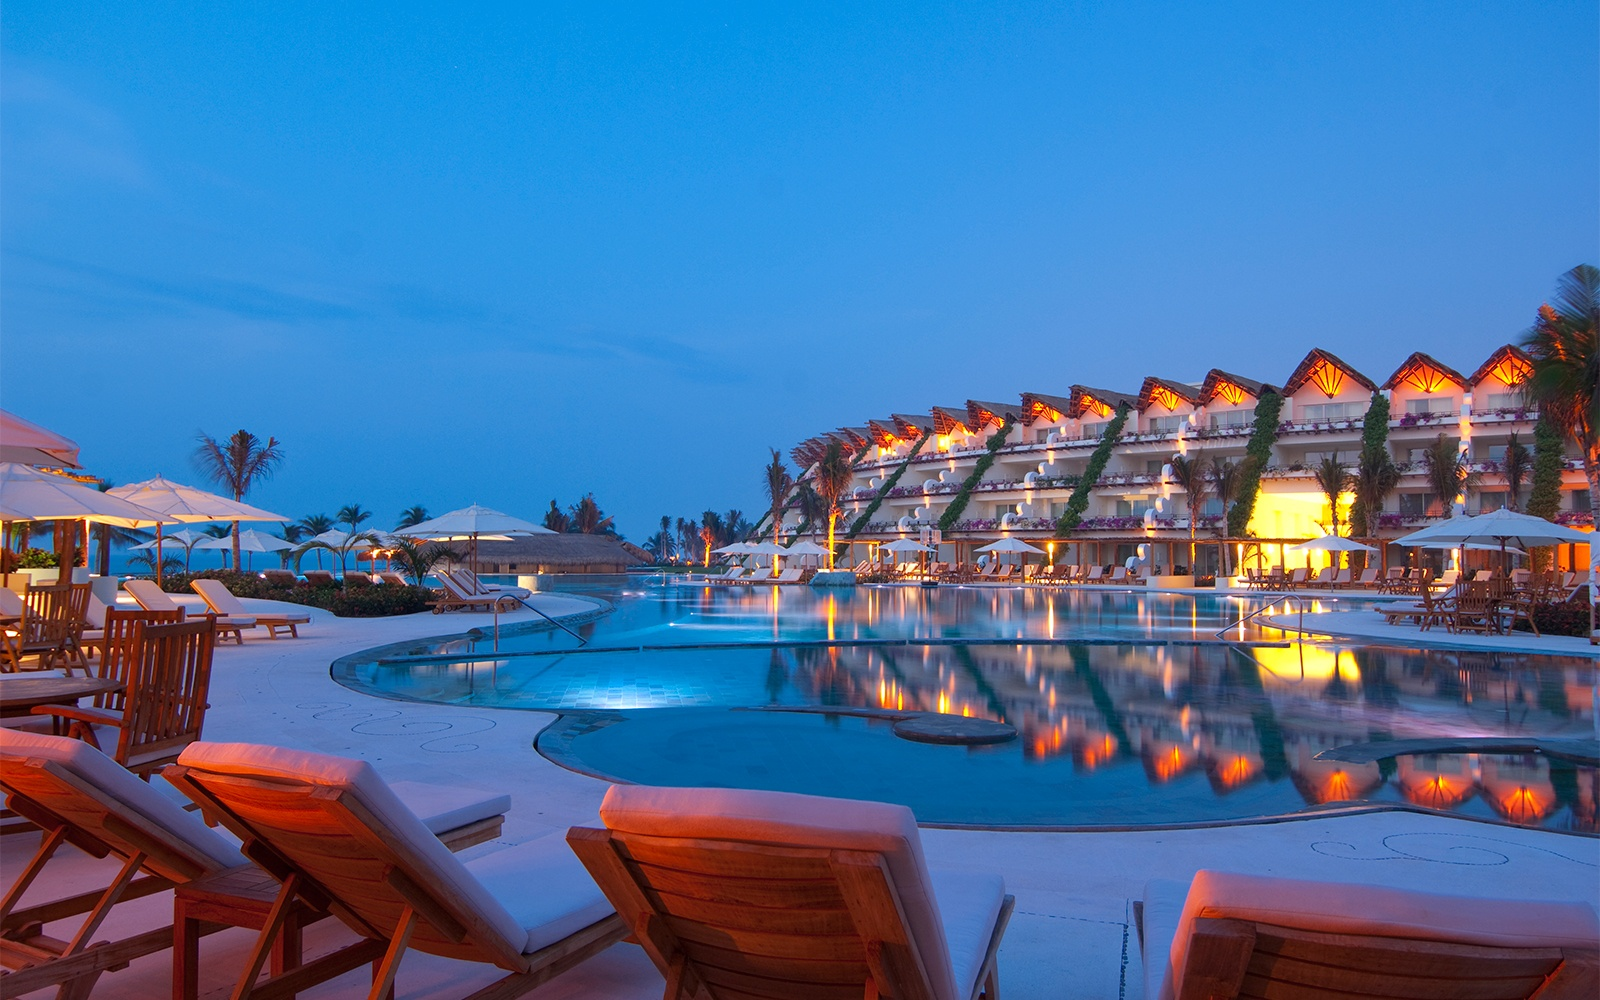 Grand Velas Riviera Maya In Playa Del Carmen Mexico The